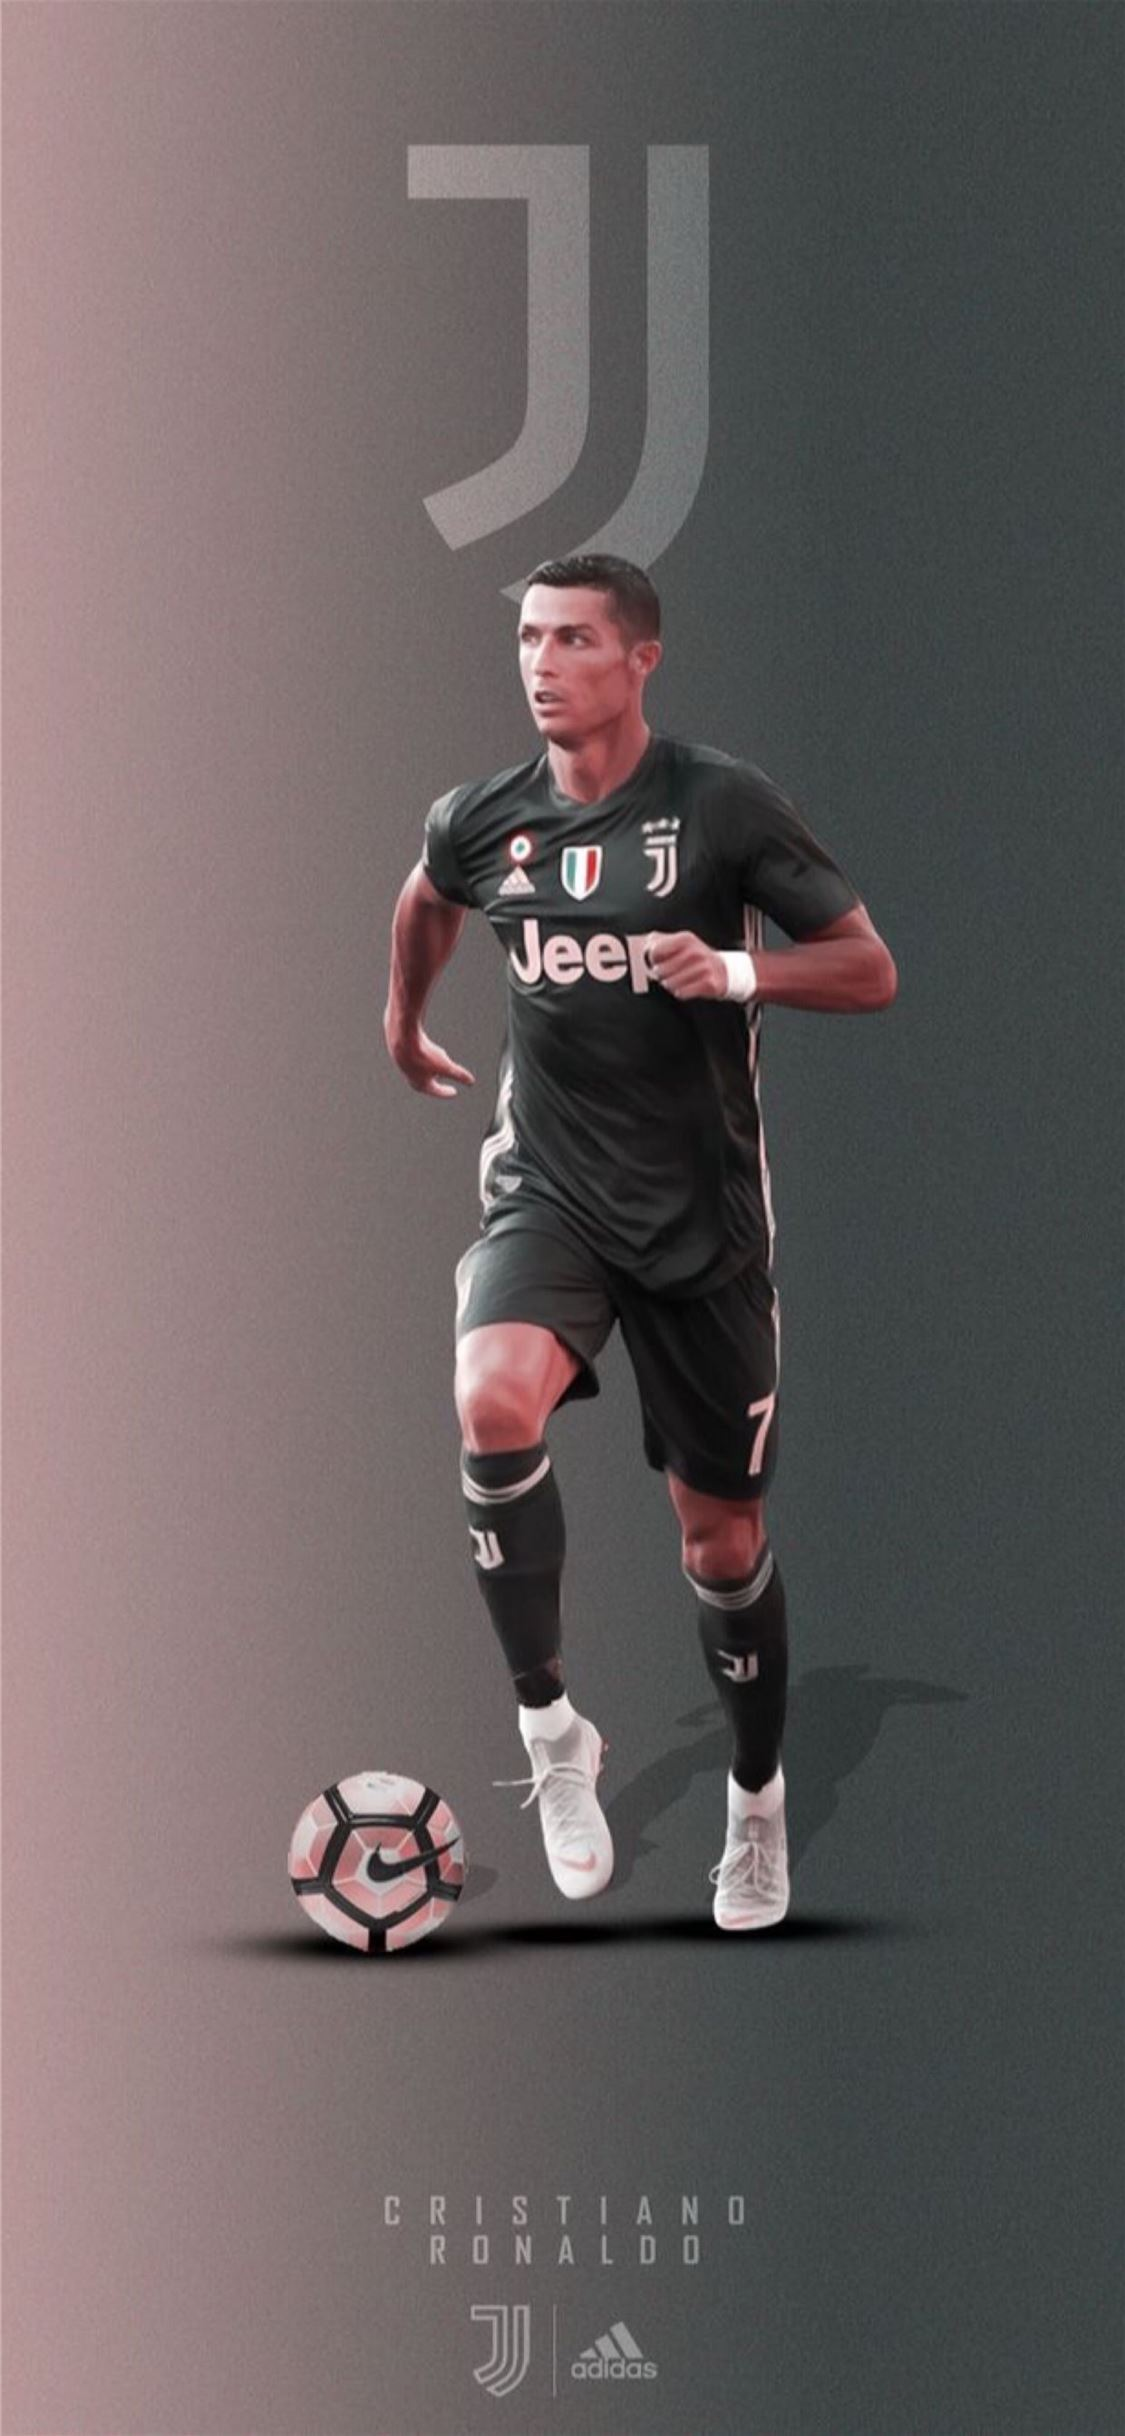 Cristiano Ronaldo Iphone X Wallpapers Free Download